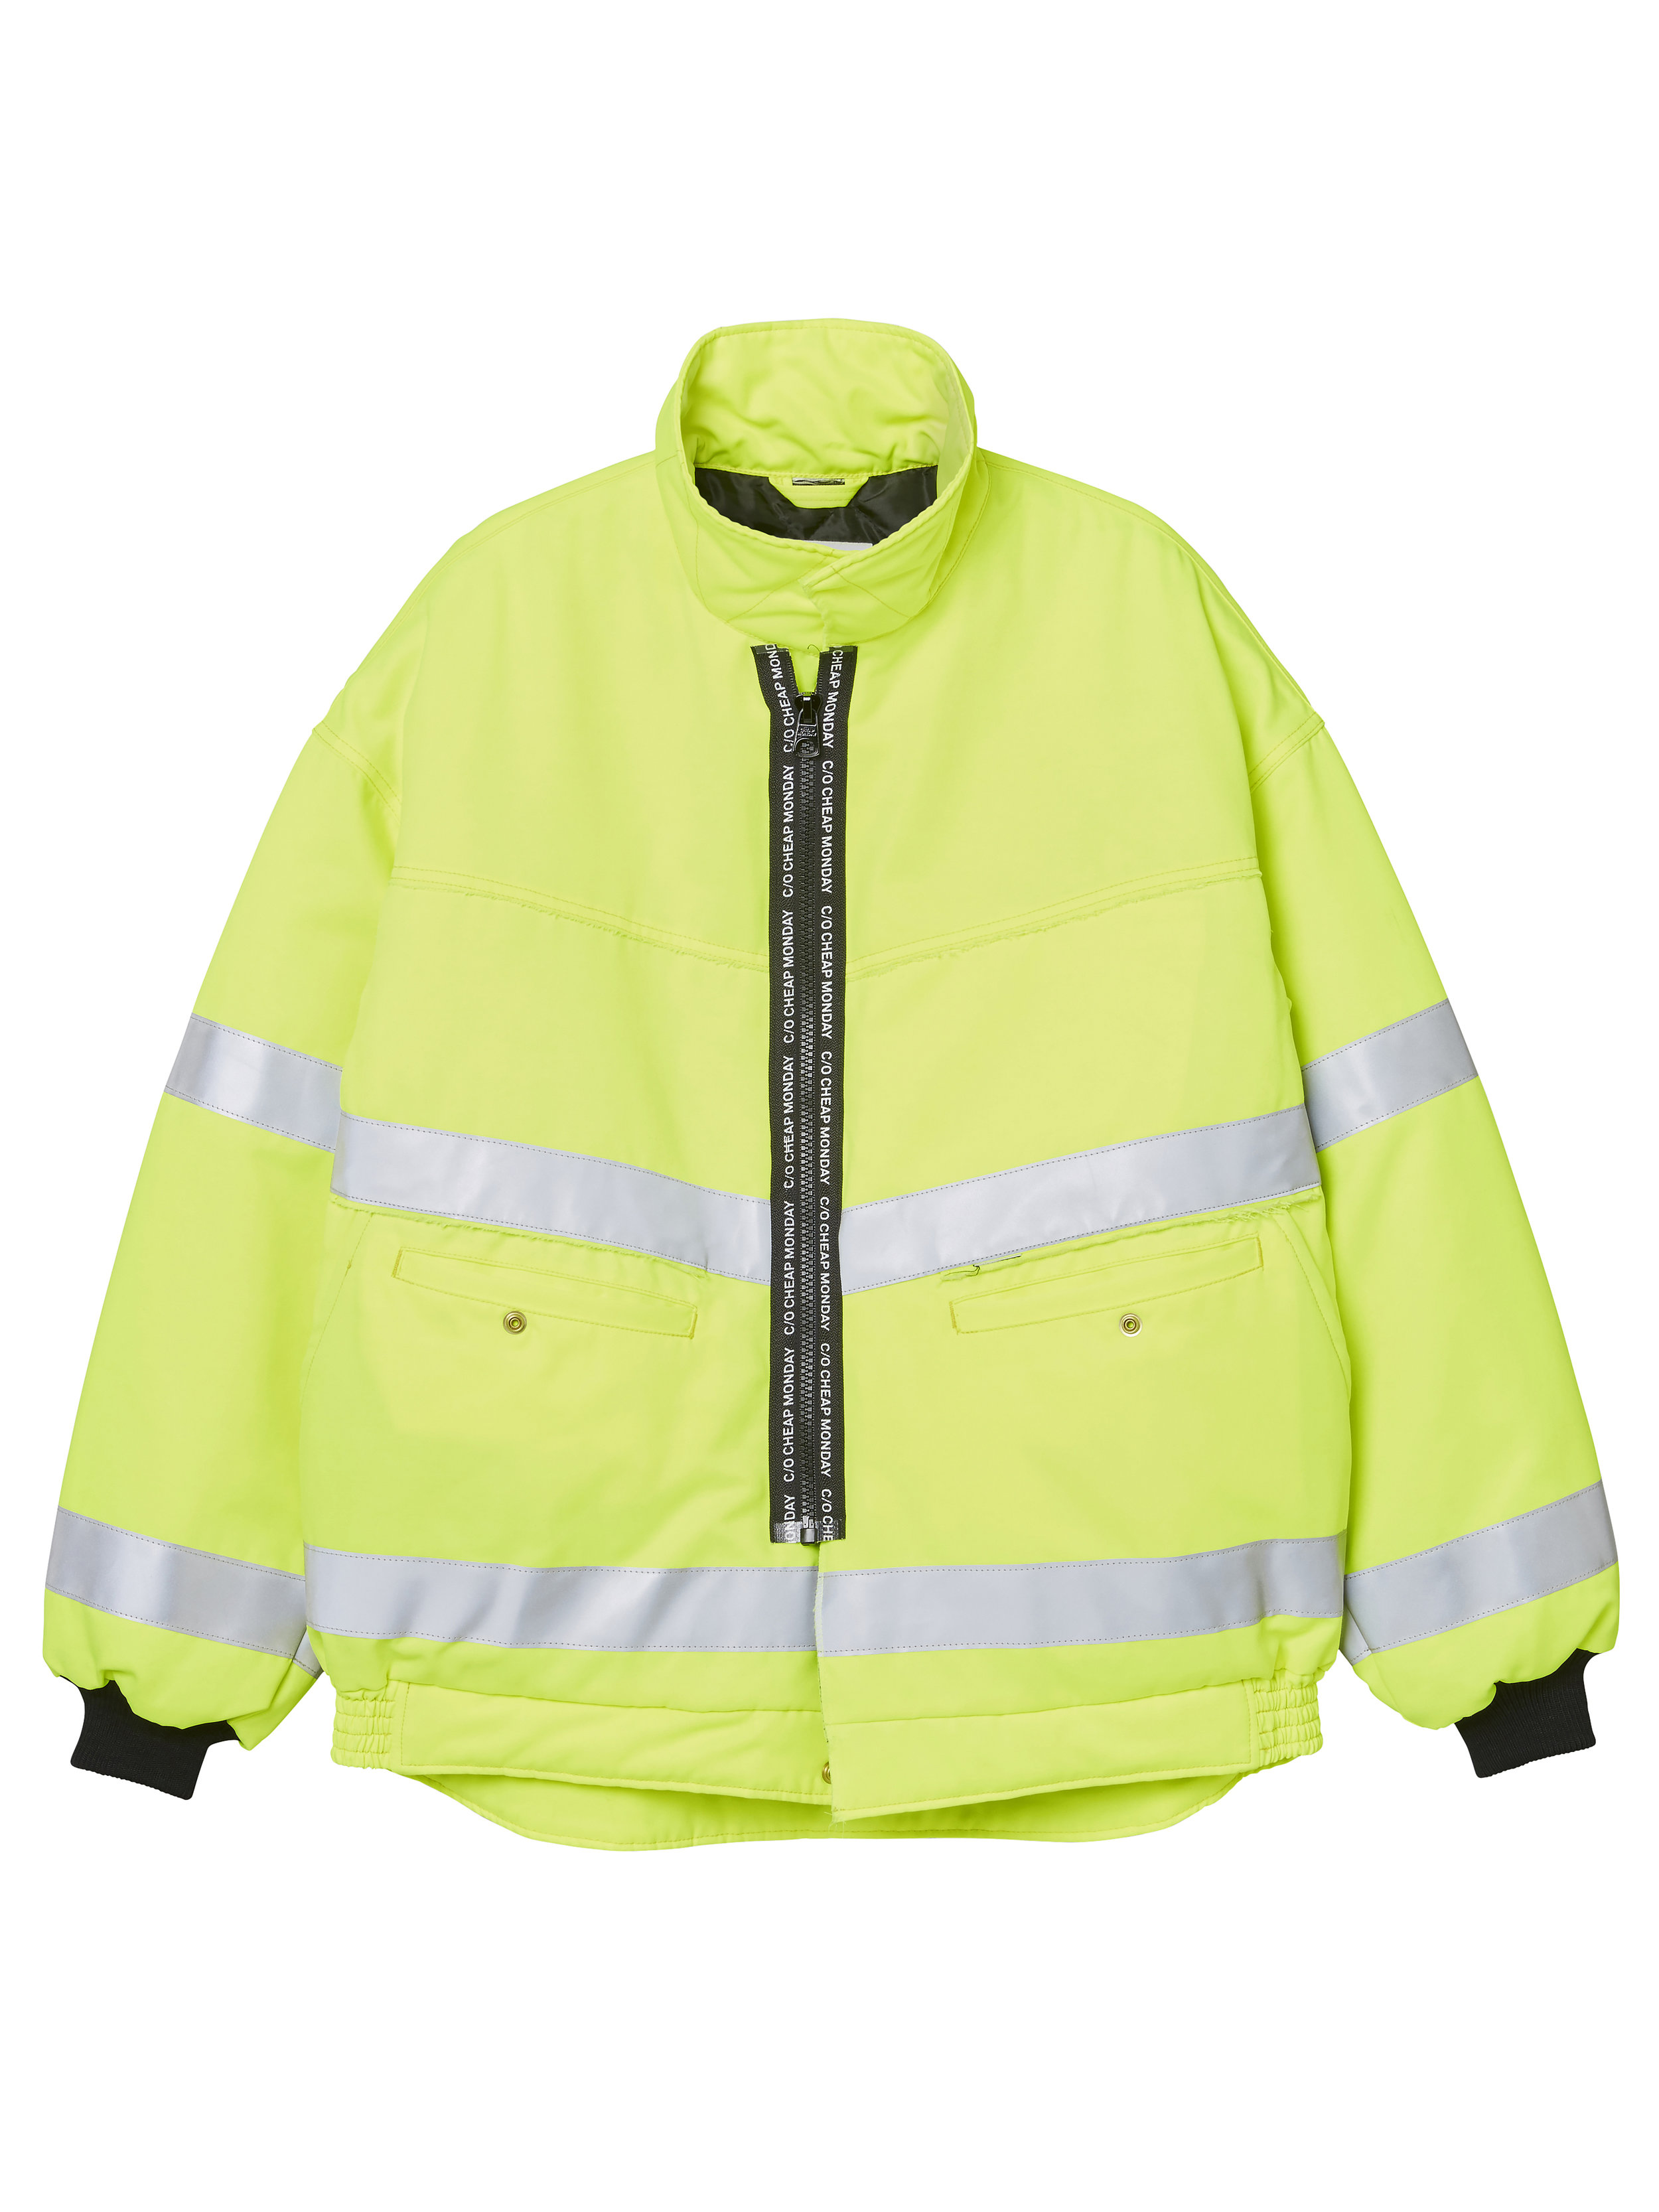 0643914_PROTECTION_JACKET_Neon_green1.jpg